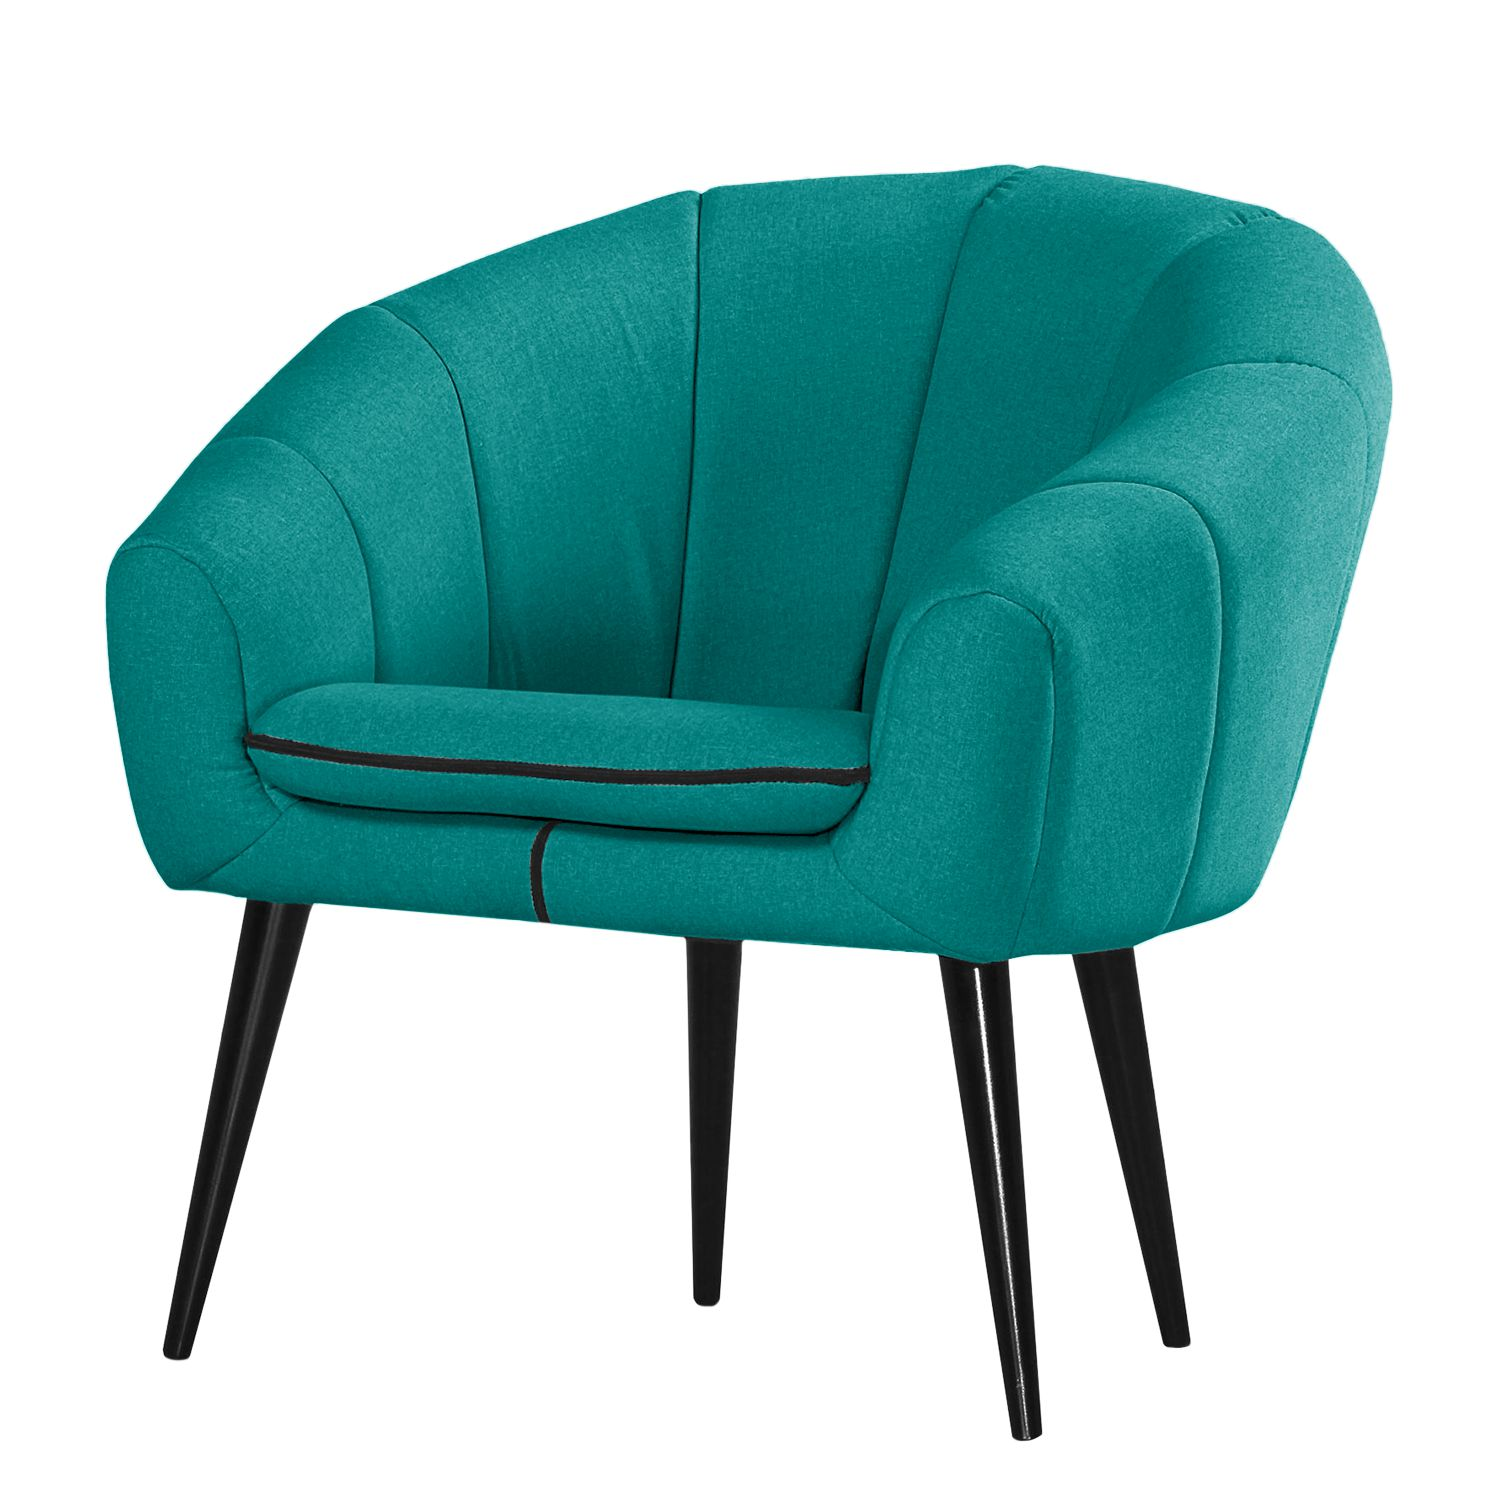 Fauteuil Buttlar - Tissu - Turquoise, Norrwood